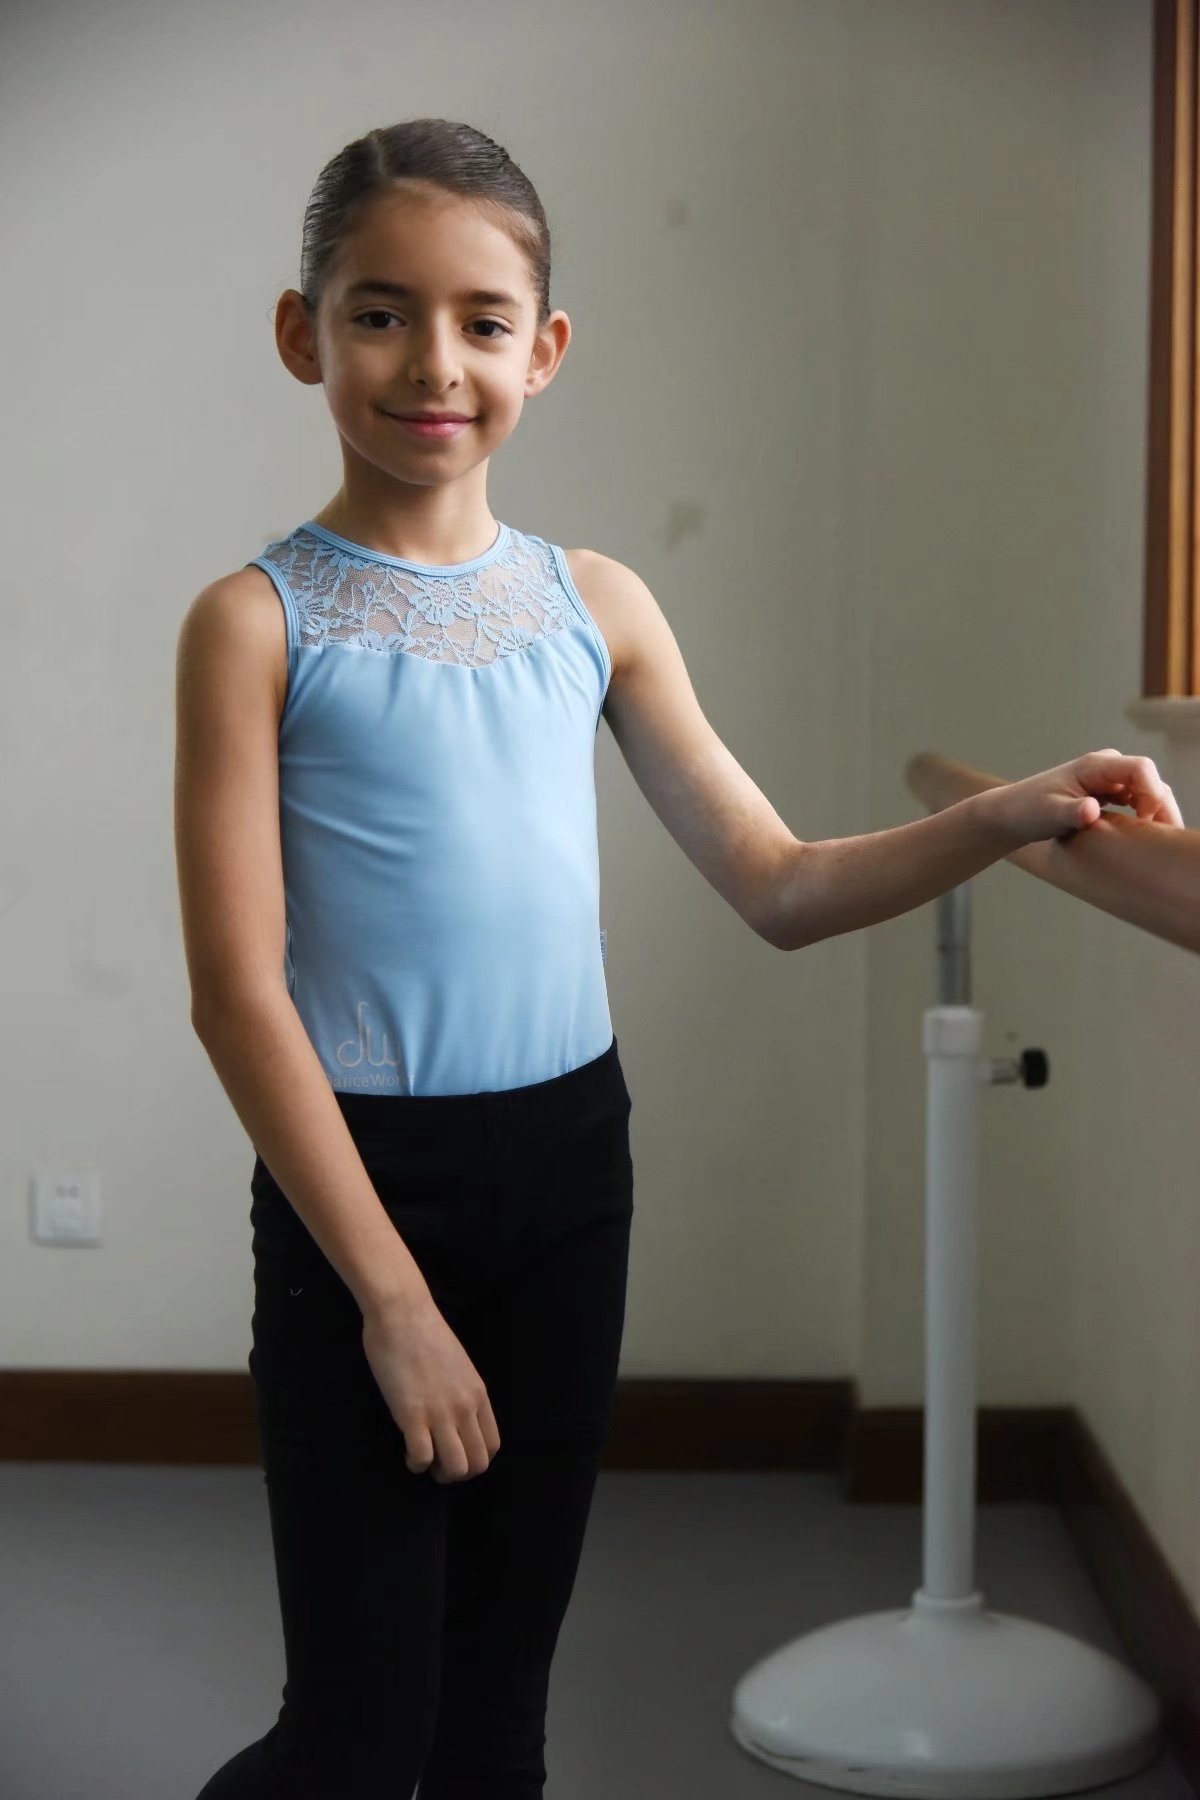 Isabella   Isabella has been dancing since she was 3 years old. She has Latin music inside her - ever since she was little, she has had an instinct for dance. She started dancing at DWS when she was 6. Isabella also loves to bake cakes!